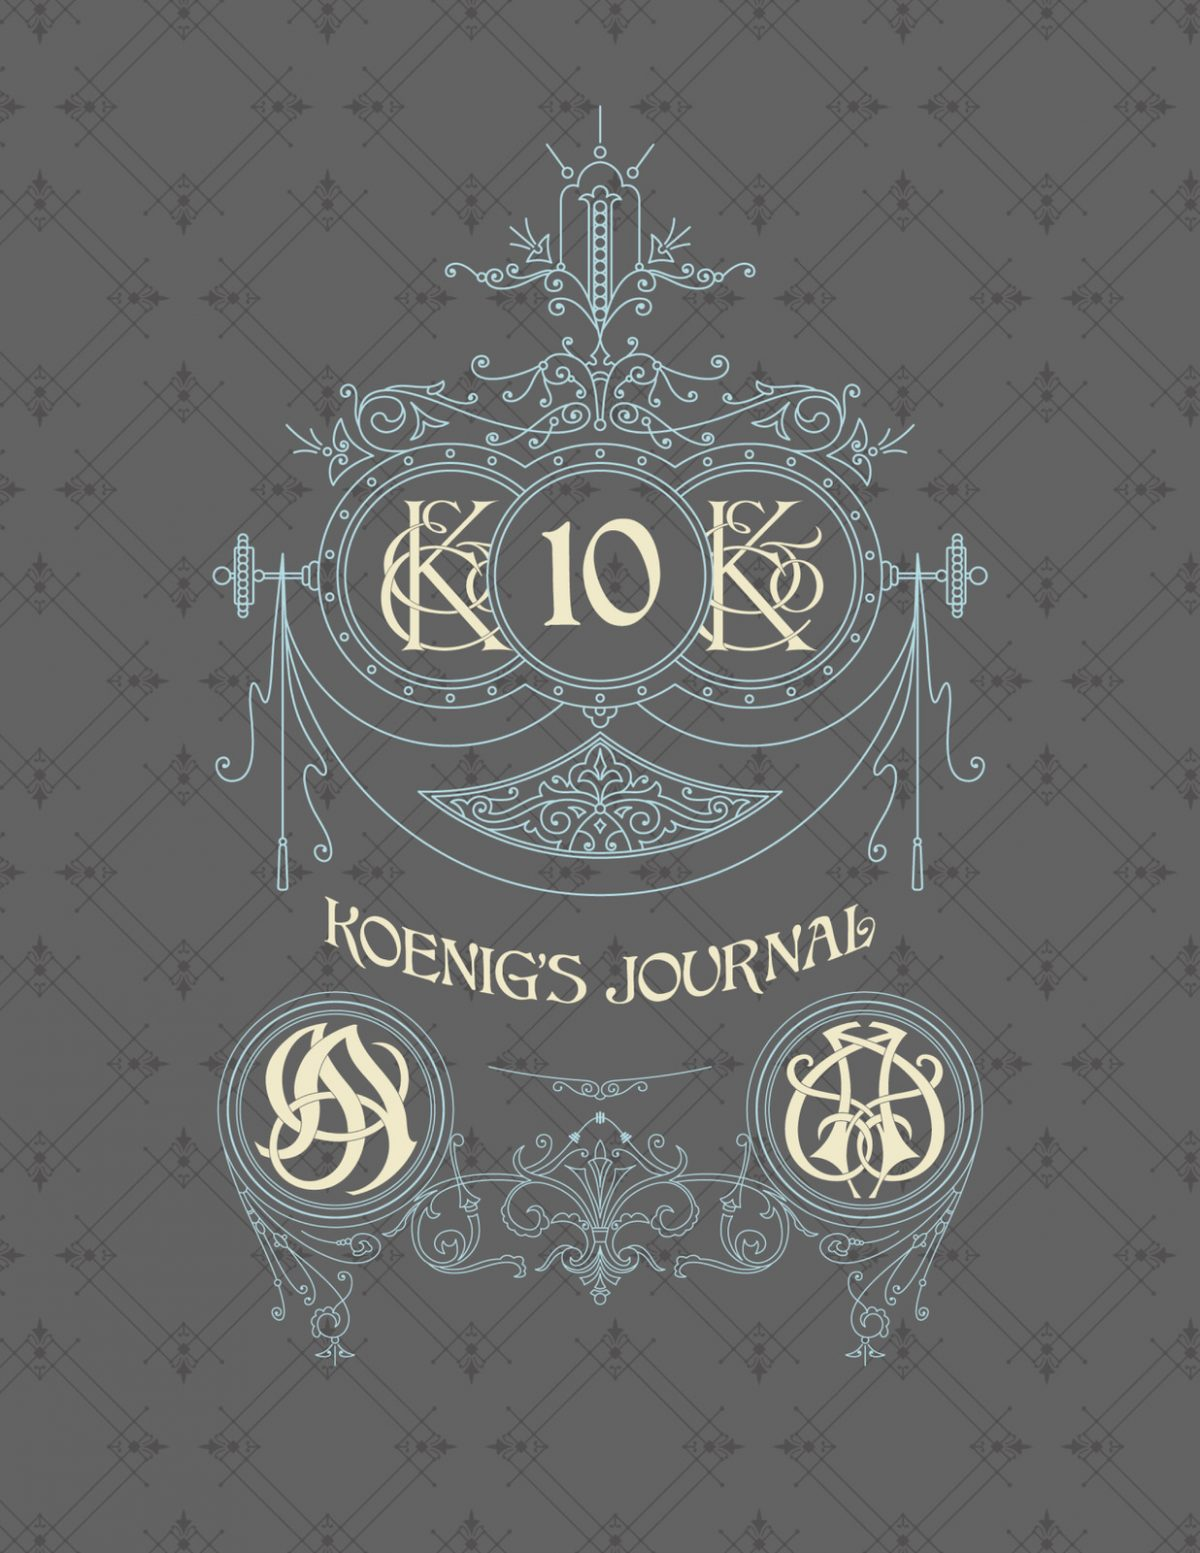 Koenig's Journal Vol.10 (Part and Score)